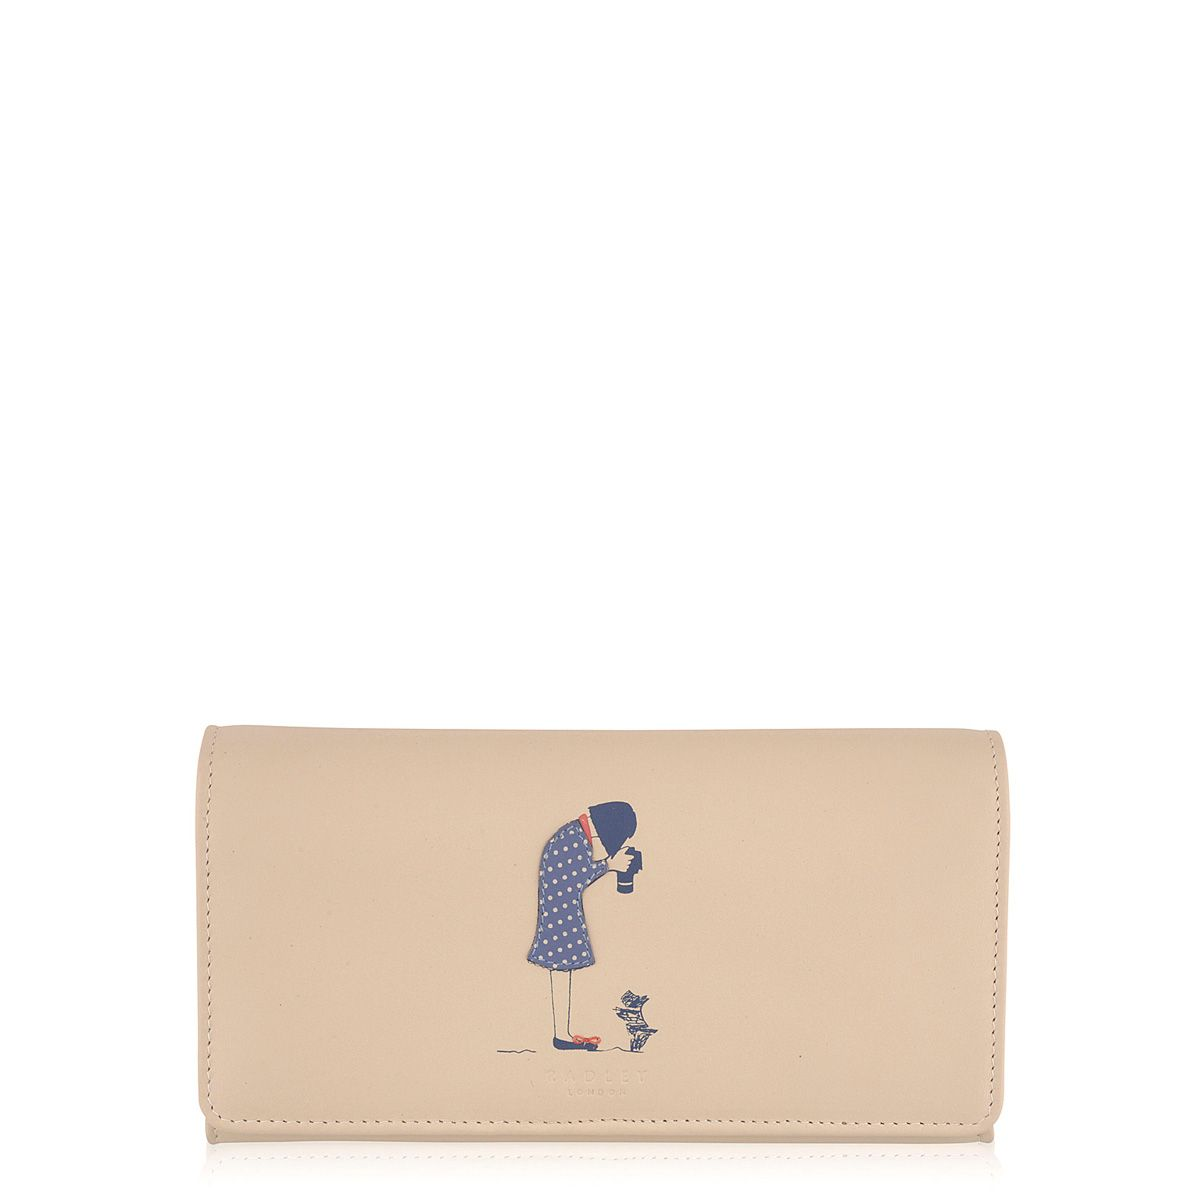 Neutral large flapover purse